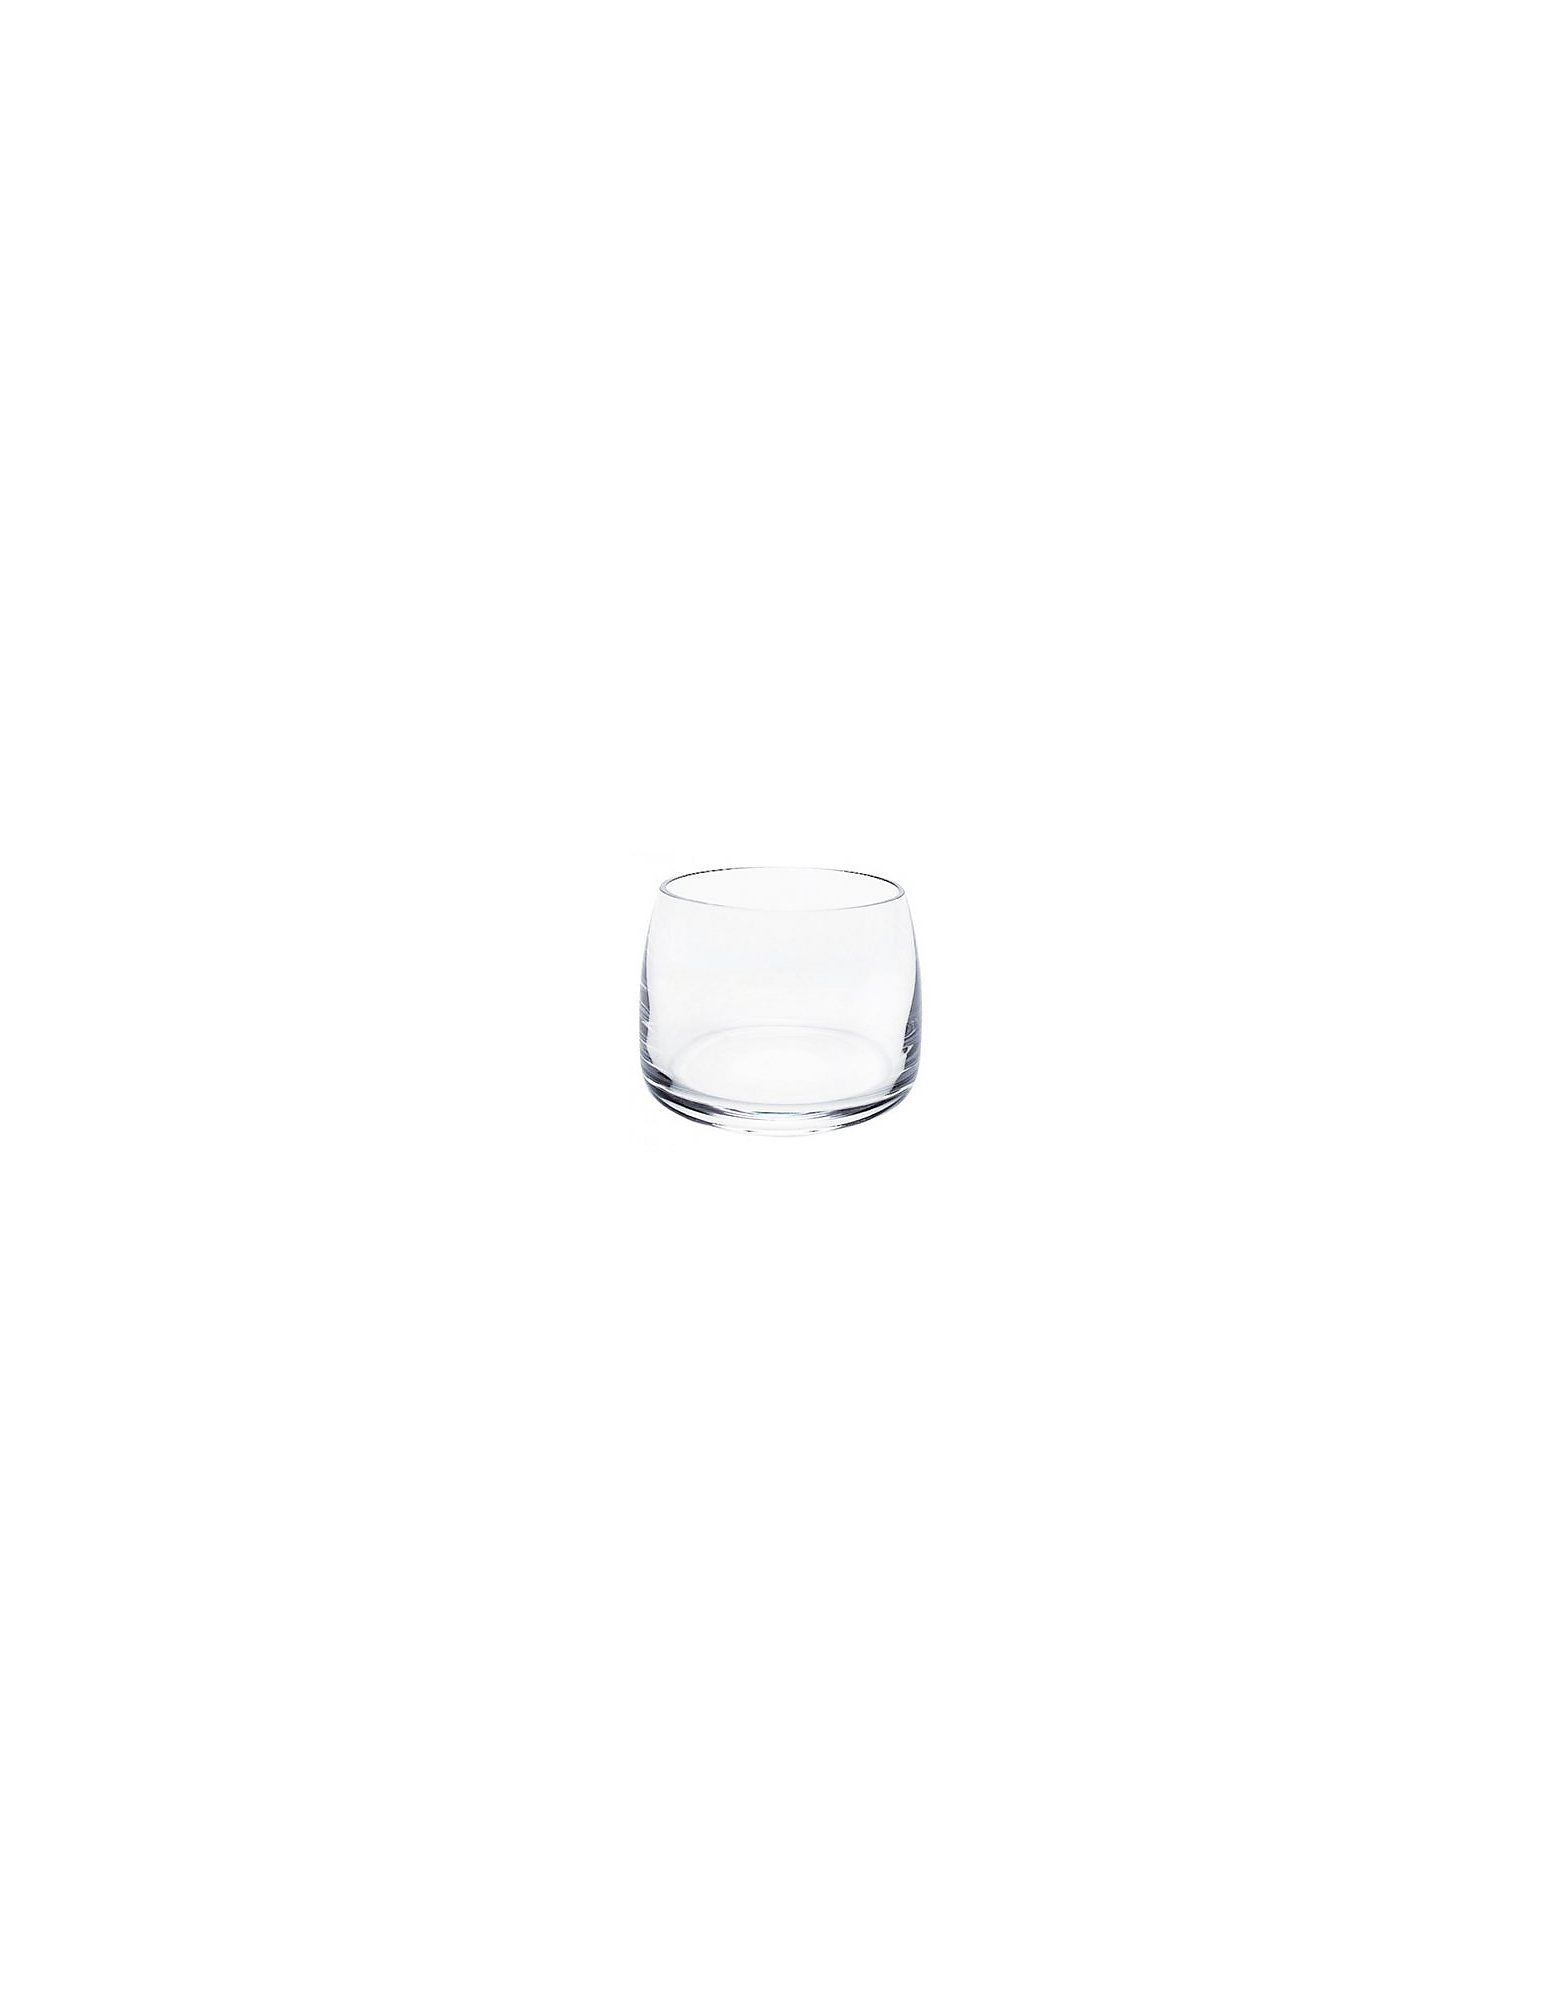 Alessi Kitchen & Dining, Orseggi Il W - Whisky Crystal Tumbler Glass